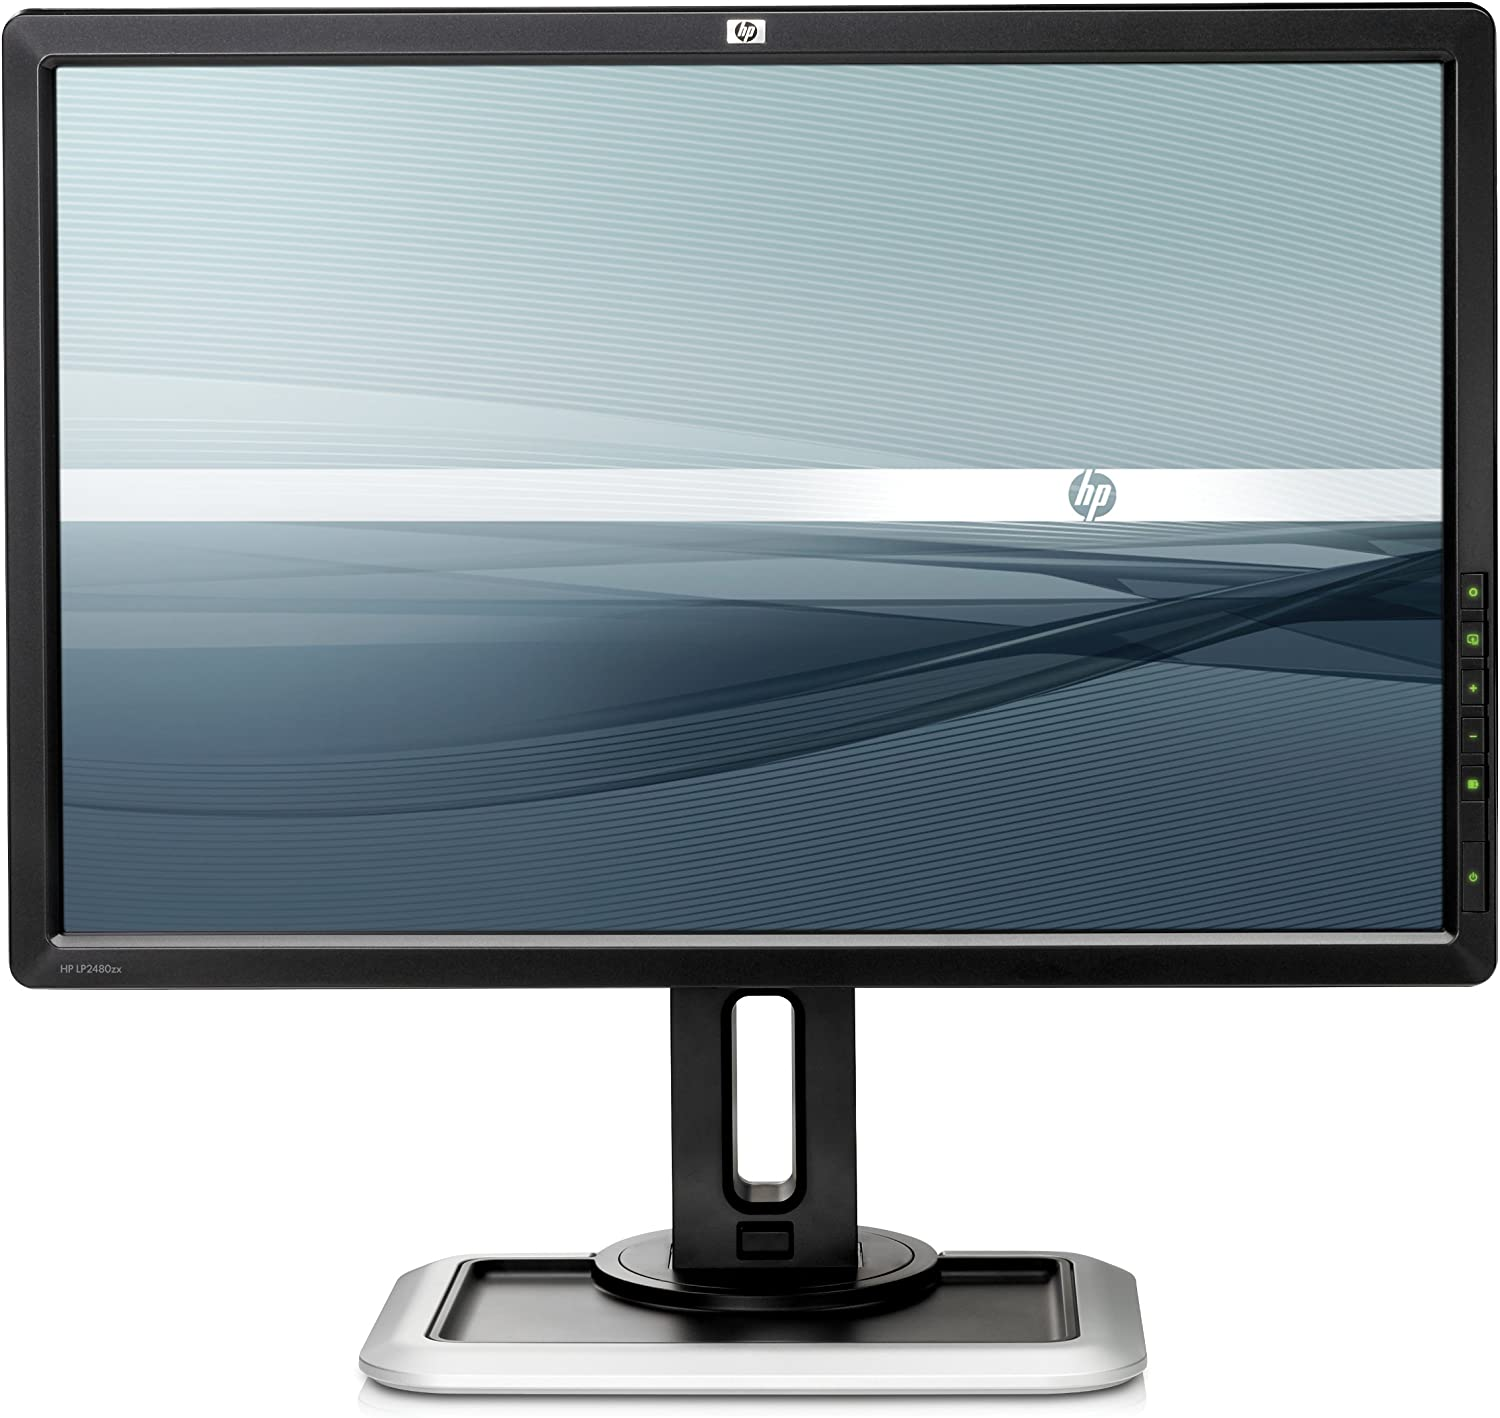 Sbuy LP2480ZX 24IN LCD Monitor